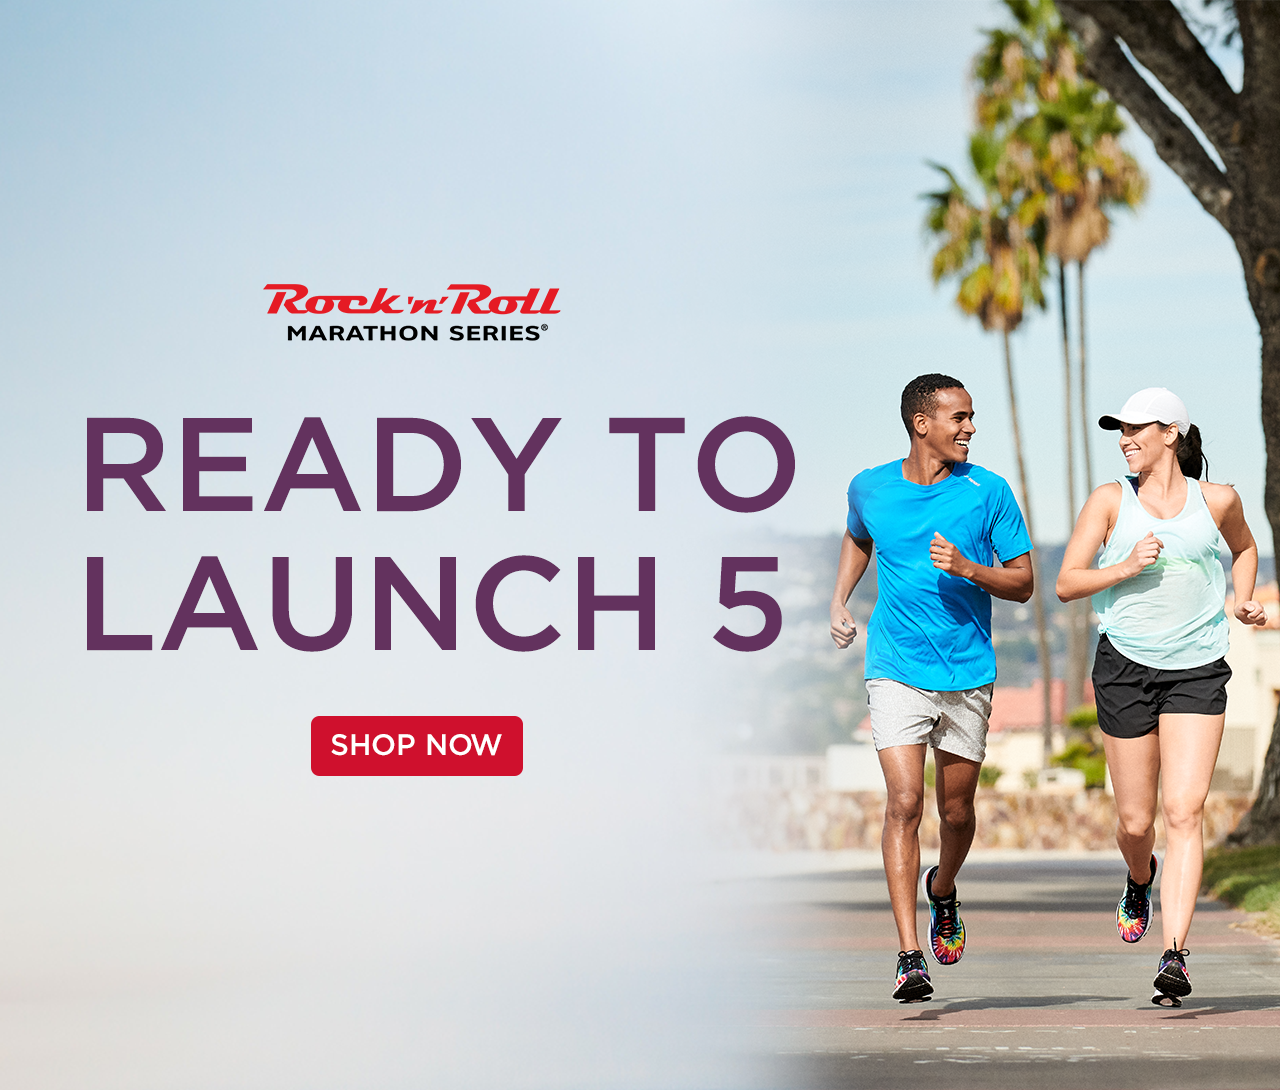 READY TO LAUNCH - RUN IN THE BROOKS LAUNCH 5